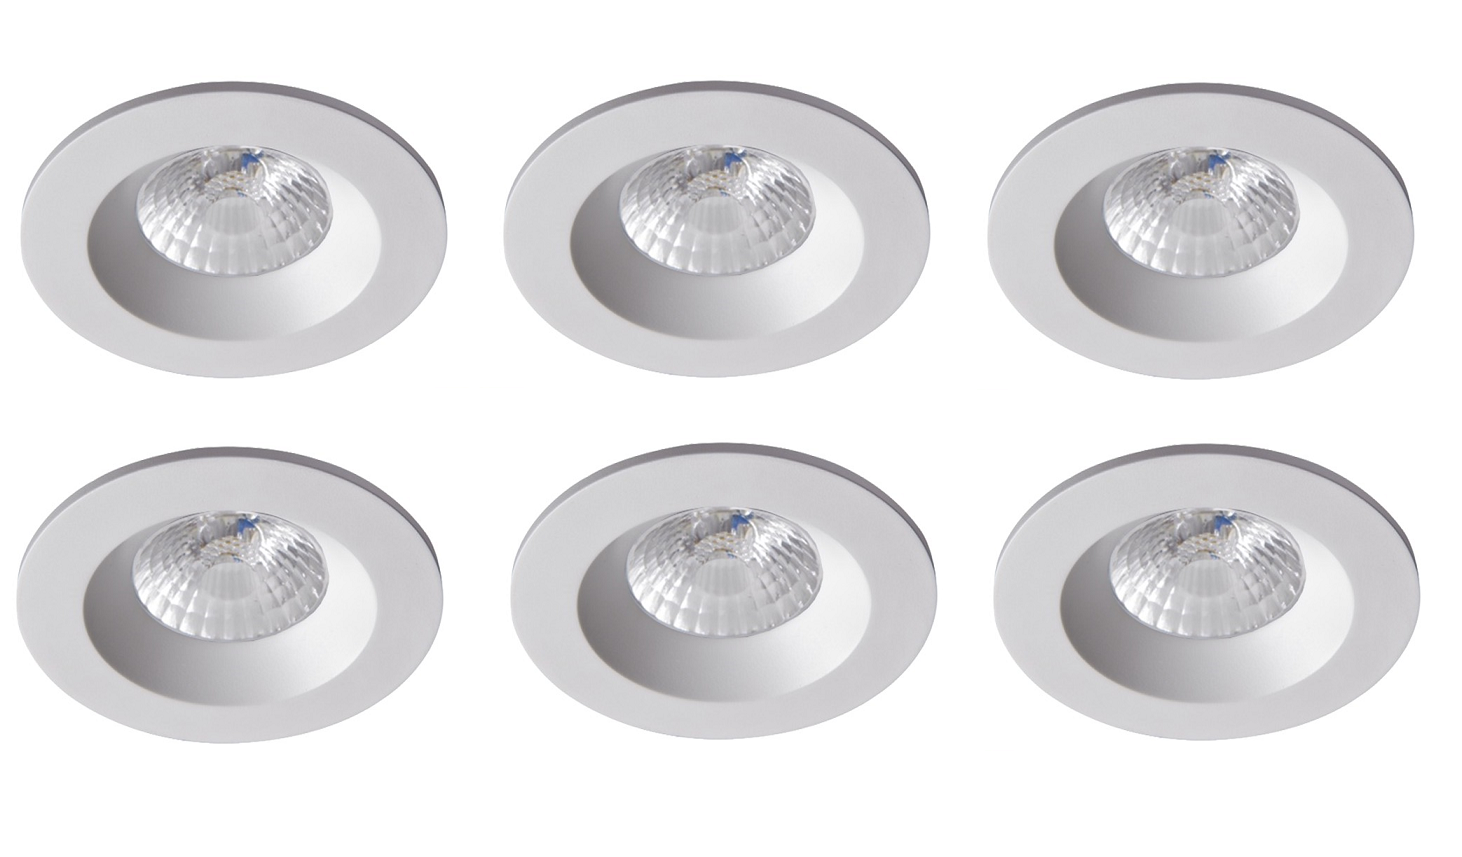 Robus | RC8WDLDWW-01 | LED inbouwspot | 6 LED spots | 575 Lumen | 6 x 8 Watt | Wit